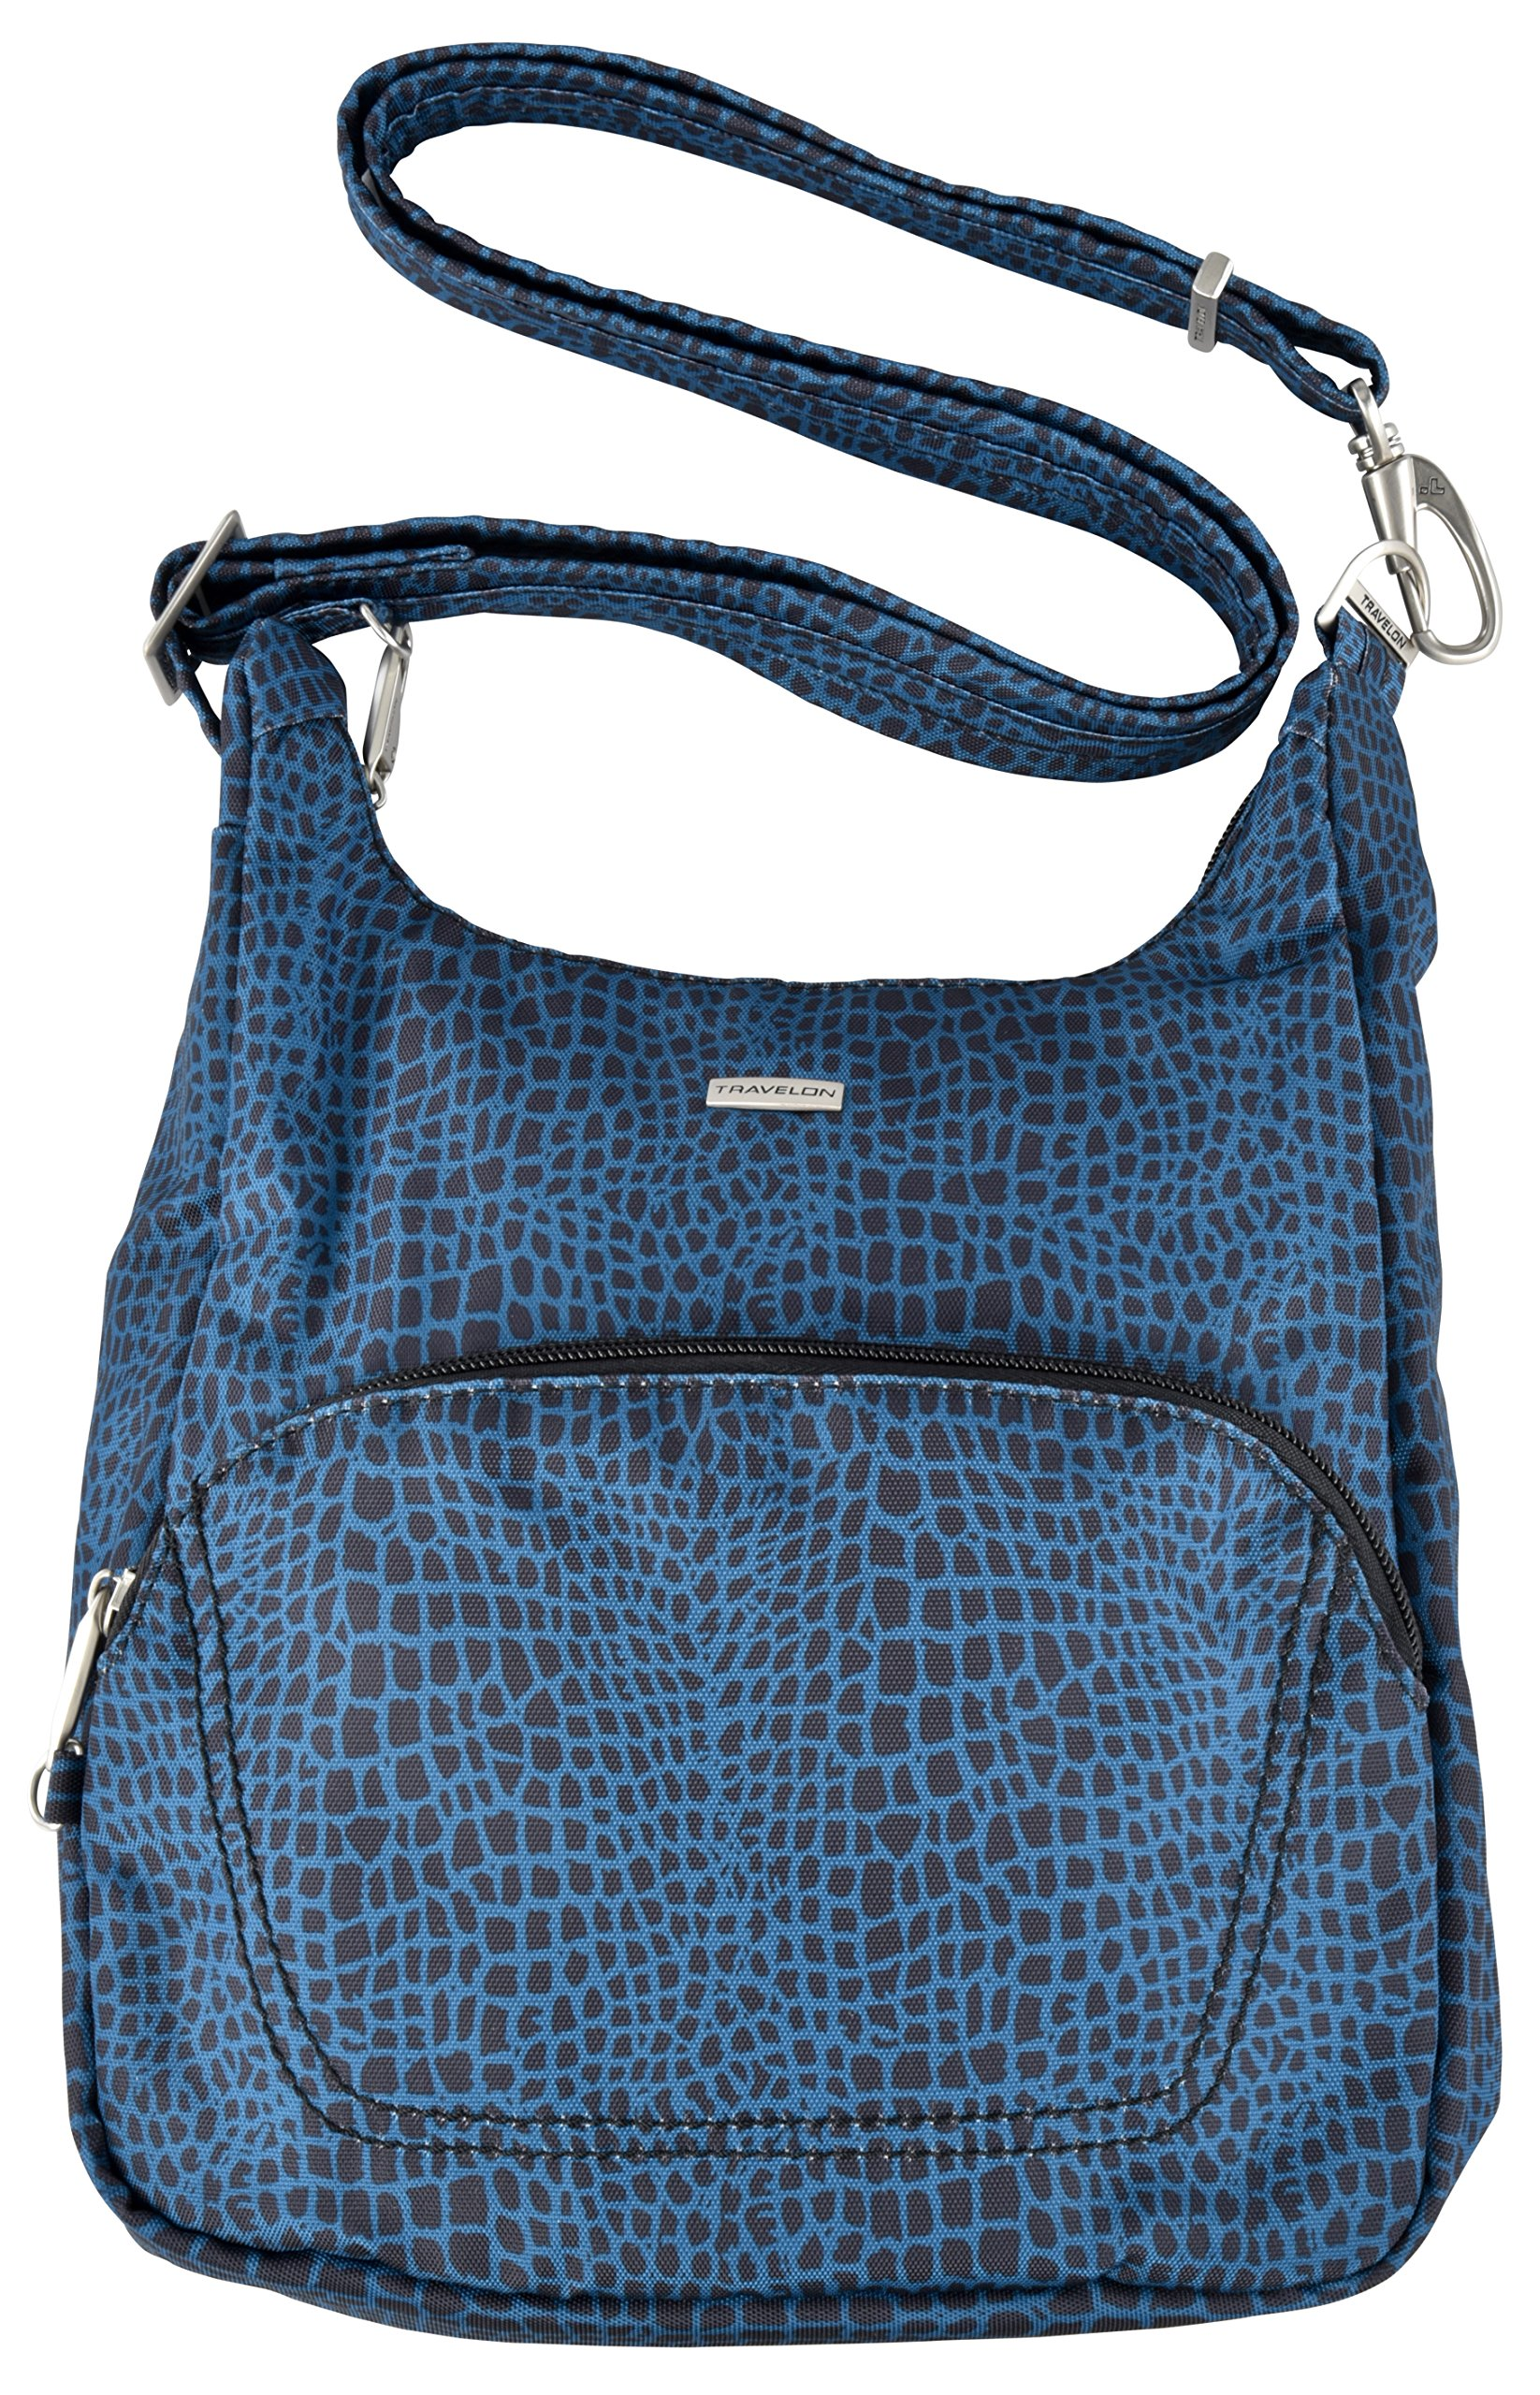 Travelon Anti-Theft Classic Essential Messenger Bag (Blue Snake)